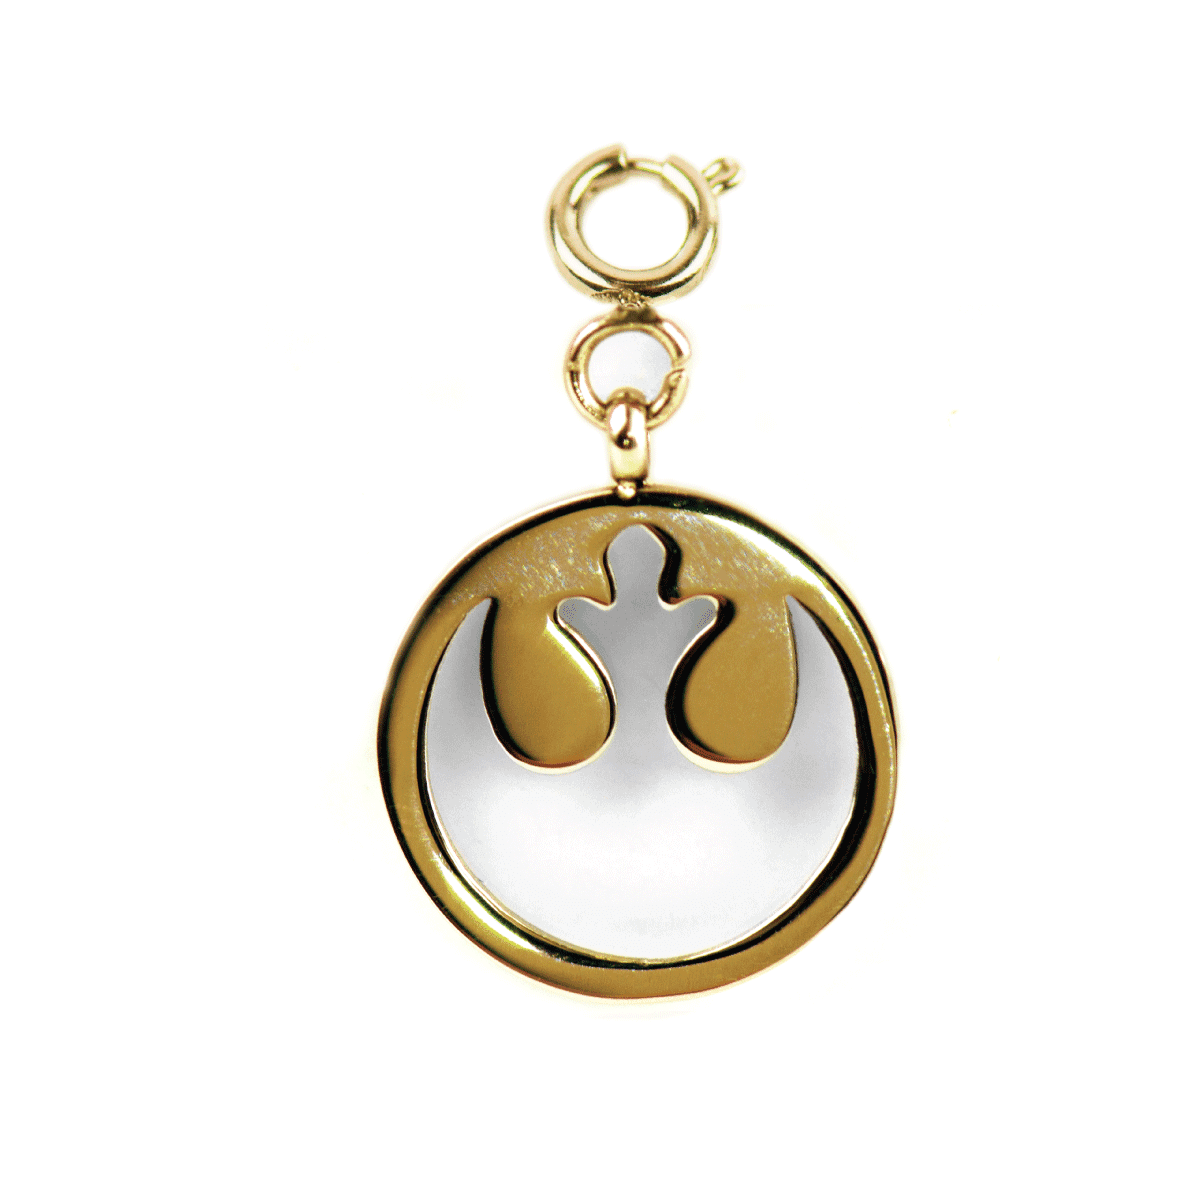 Alliance rebelle - Étiquette de charme de bracelet en or Star Wars